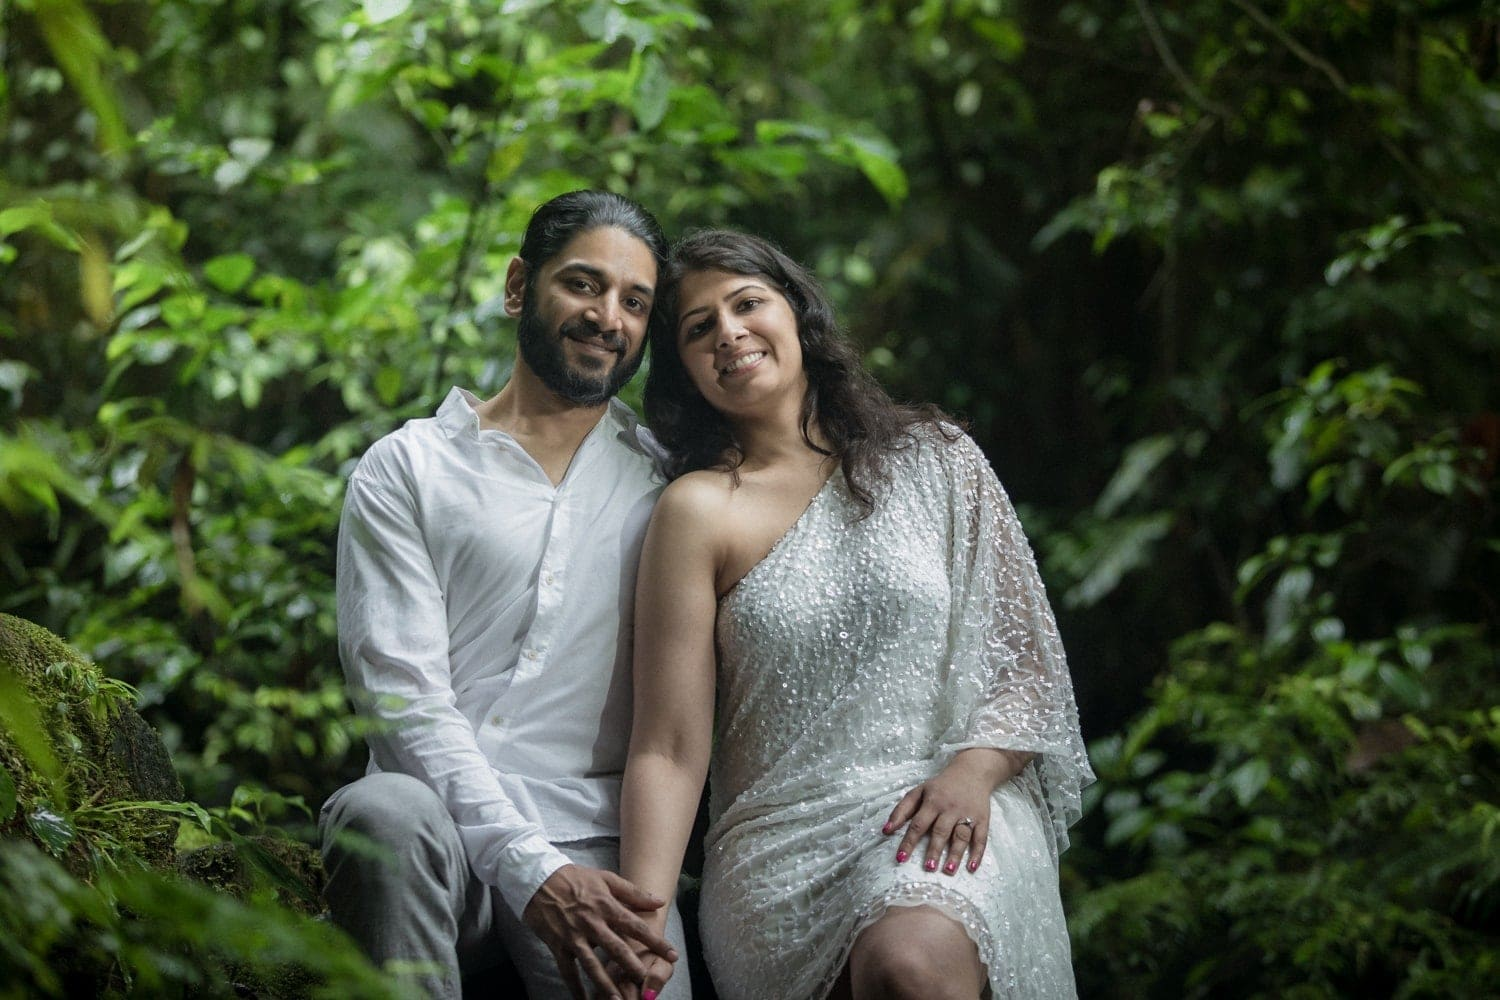 Amberene-Farhan-Engagement-Photos-La-Fortuna-Waterfall-19.jpg